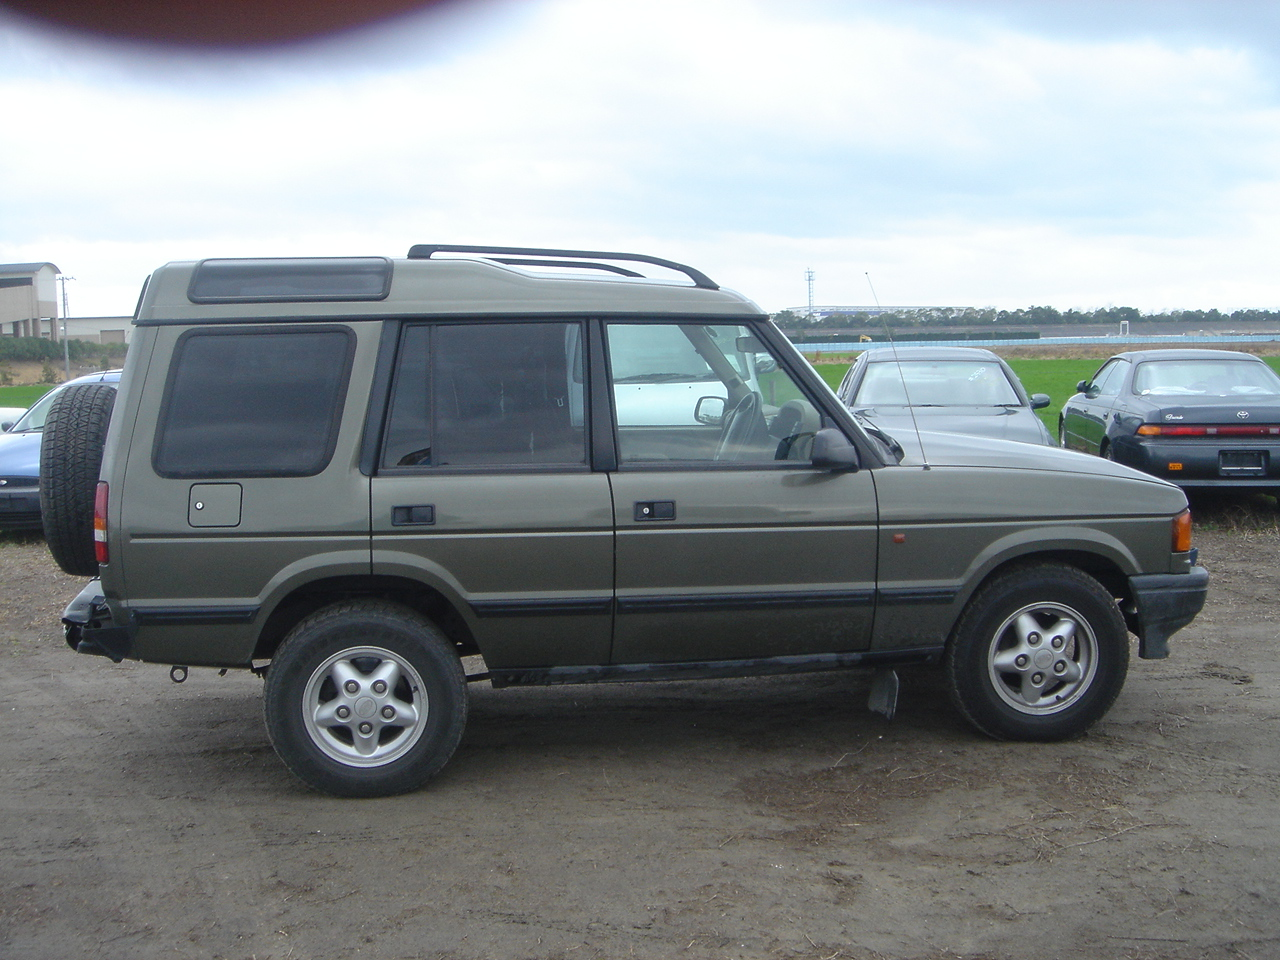 Rover Land Rover Discovery V8i S 4wd 1996 Used For Sale